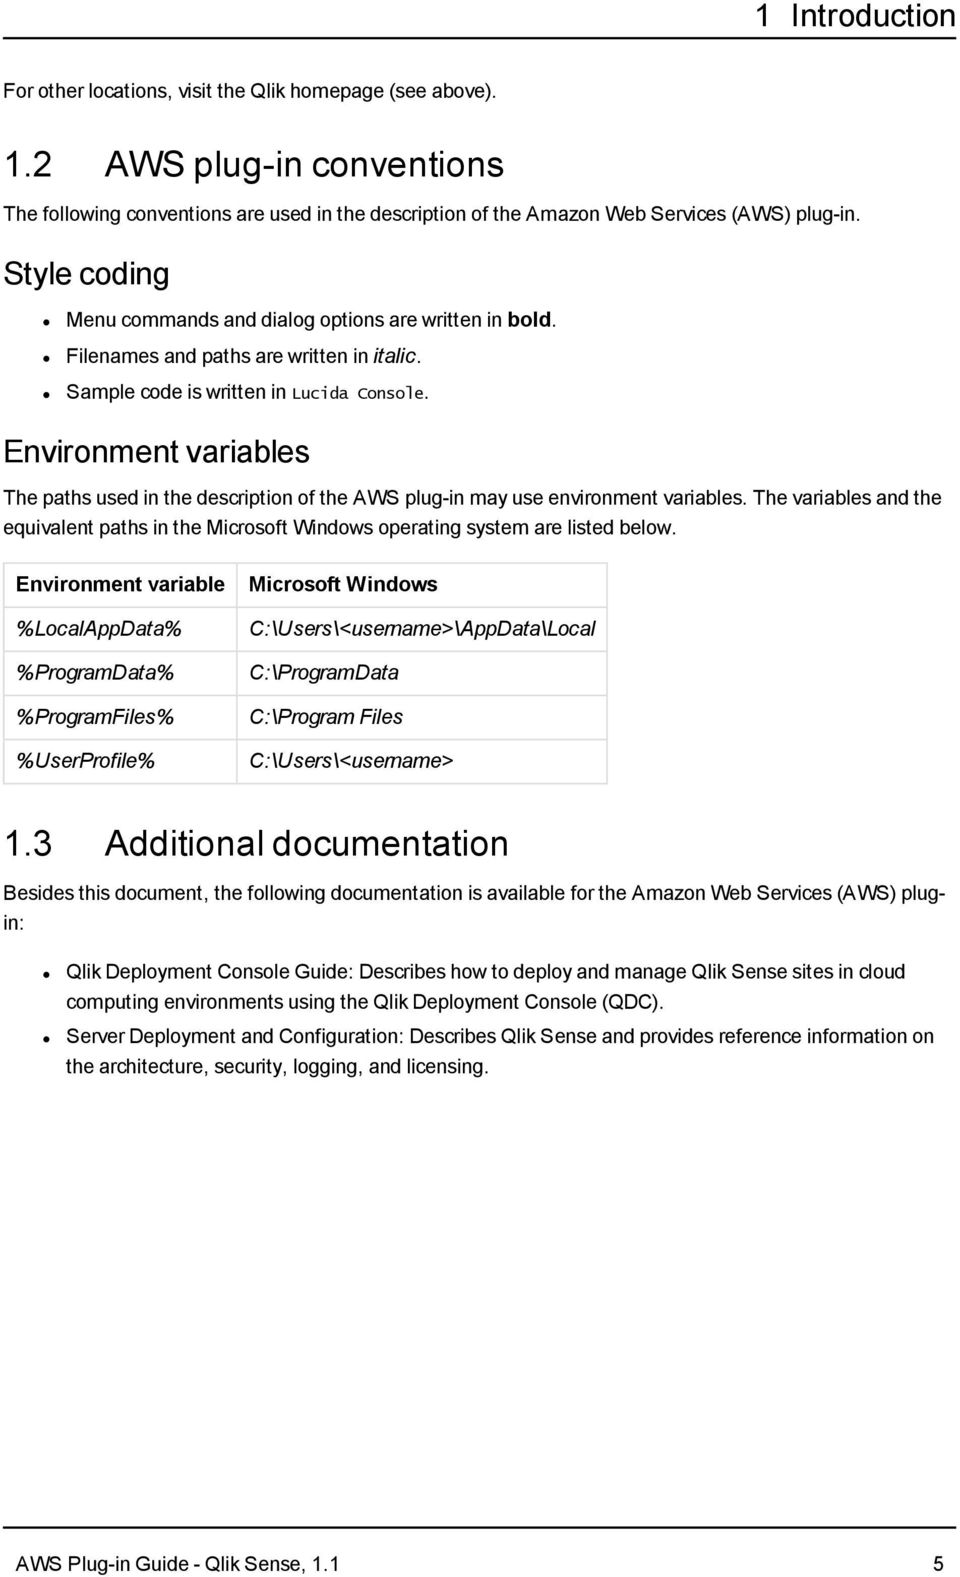 Environment variables The paths used in the description of the AWS plug-in may use environment variables.